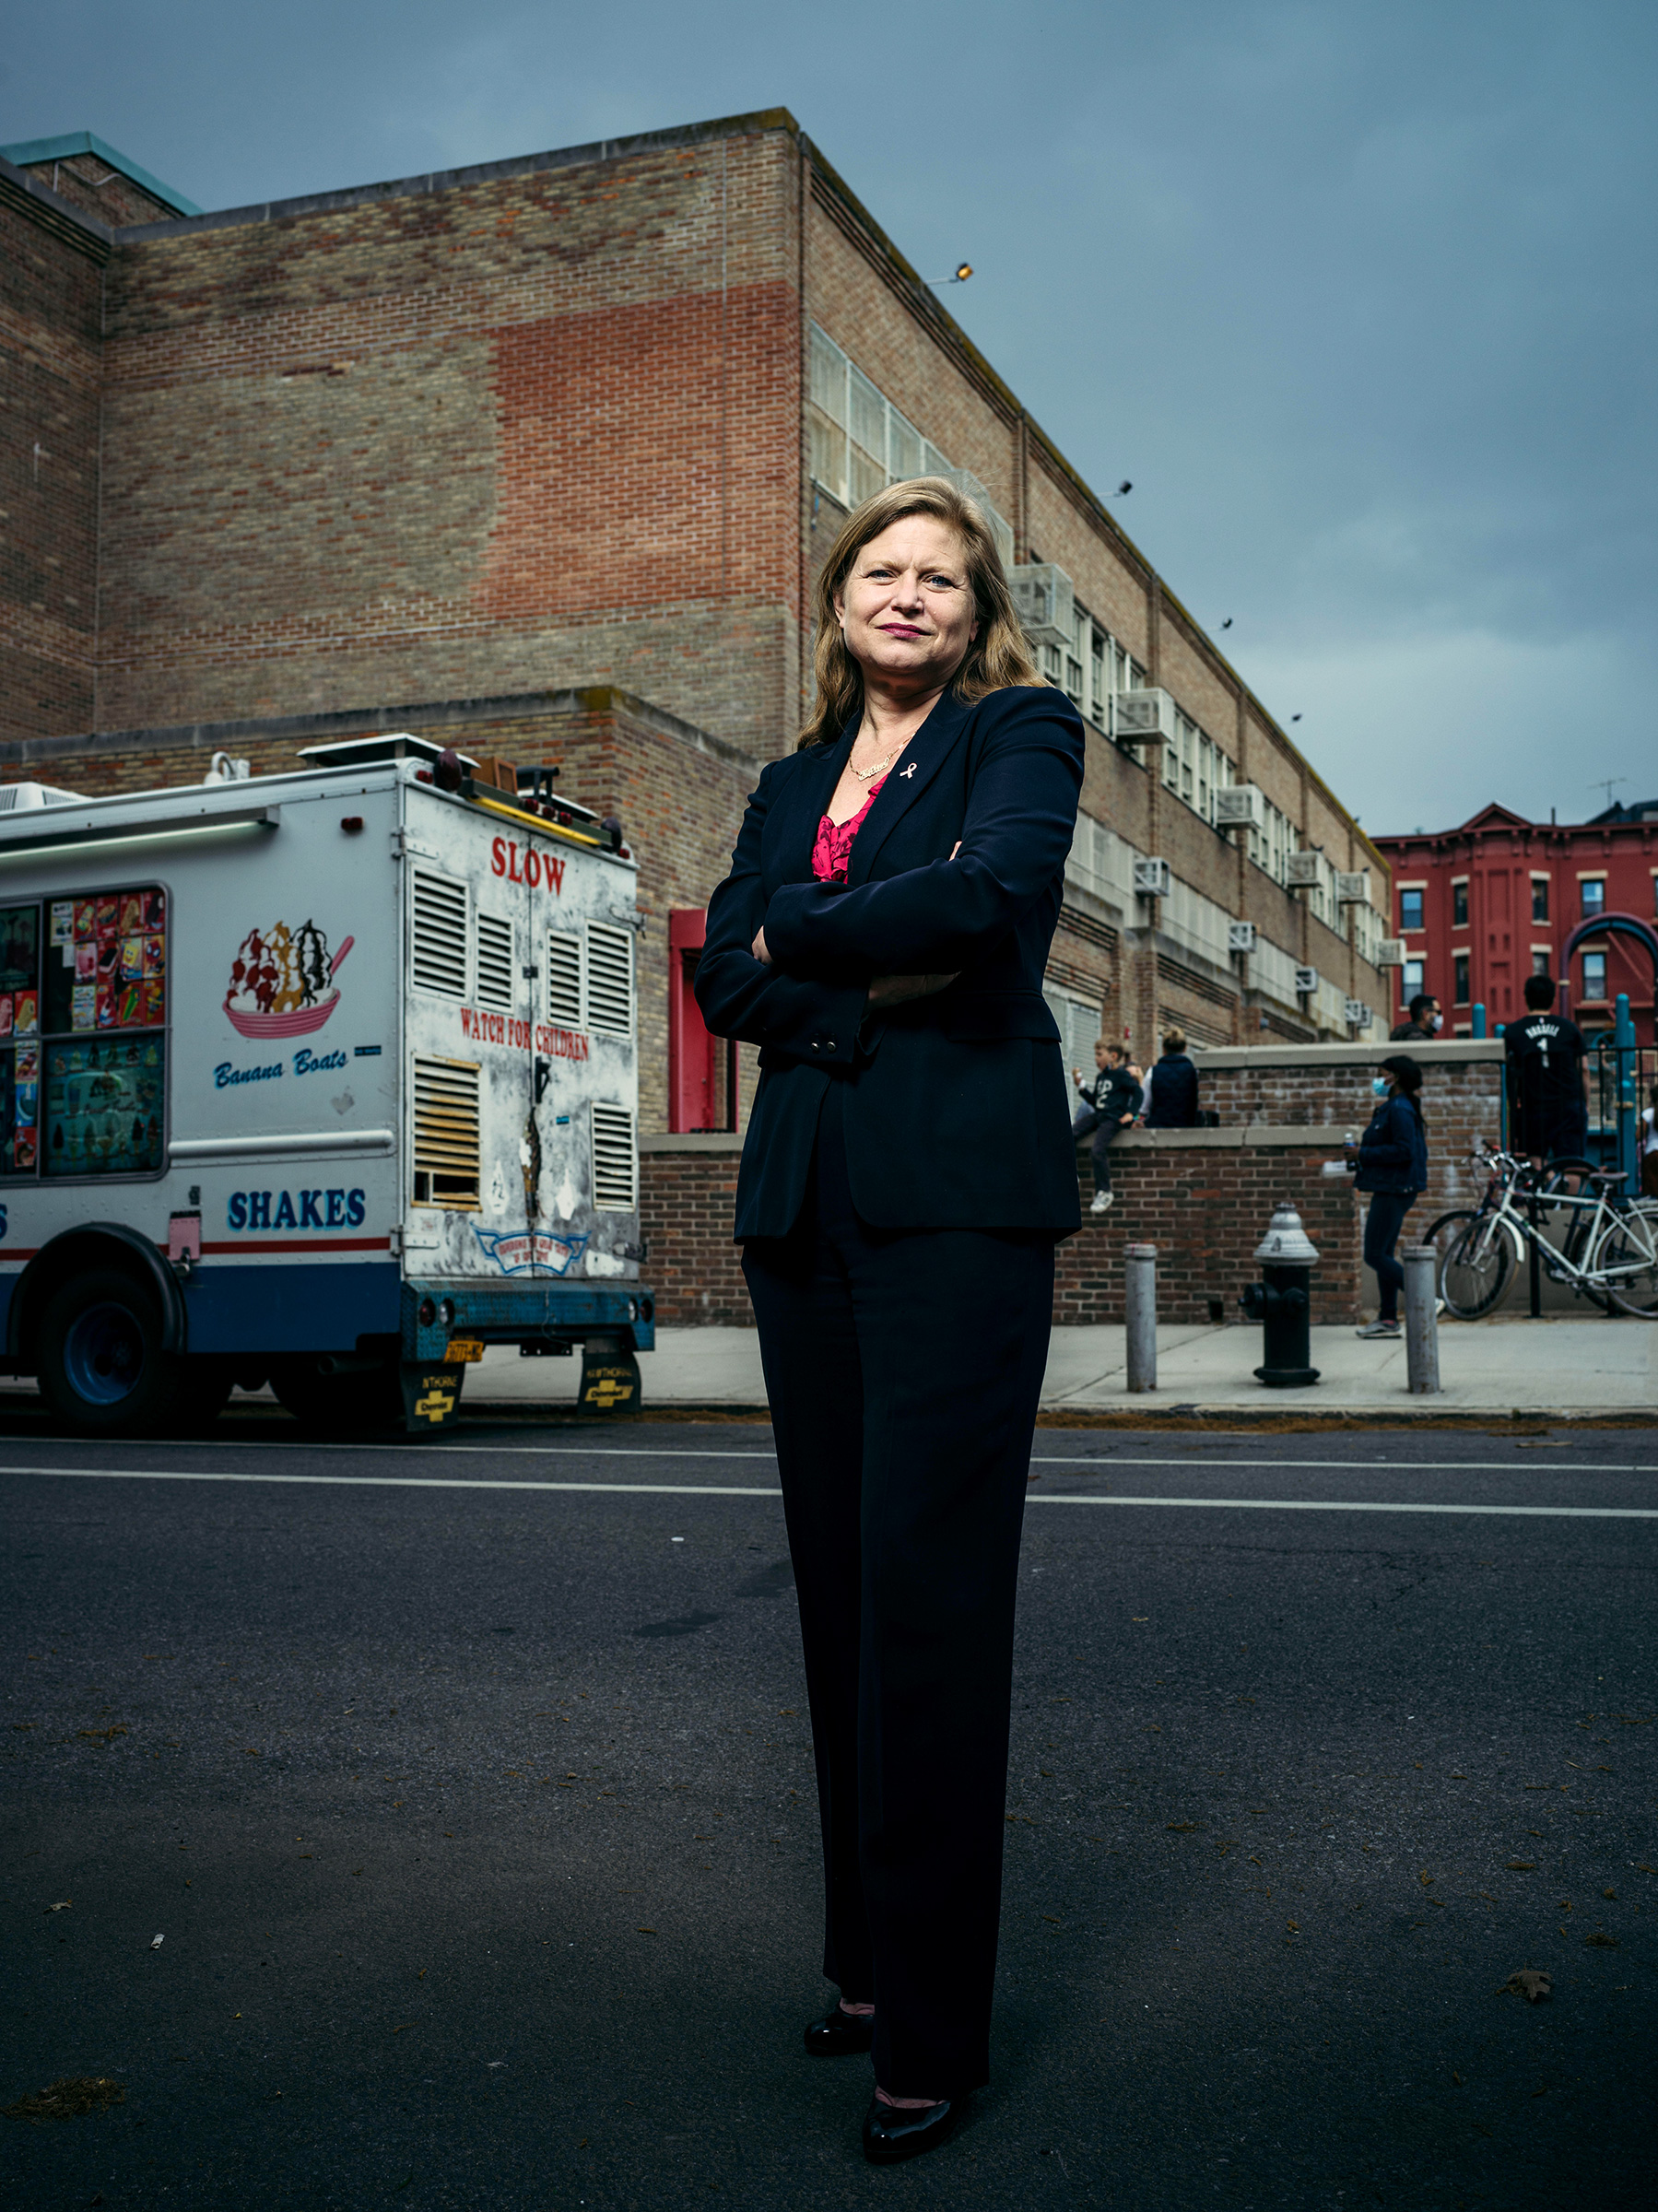 Kathryn Garcia, a longtime civil servant who served as commissioner of New York City's Sanitation Department, in Brooklyn on April 30, 2021.